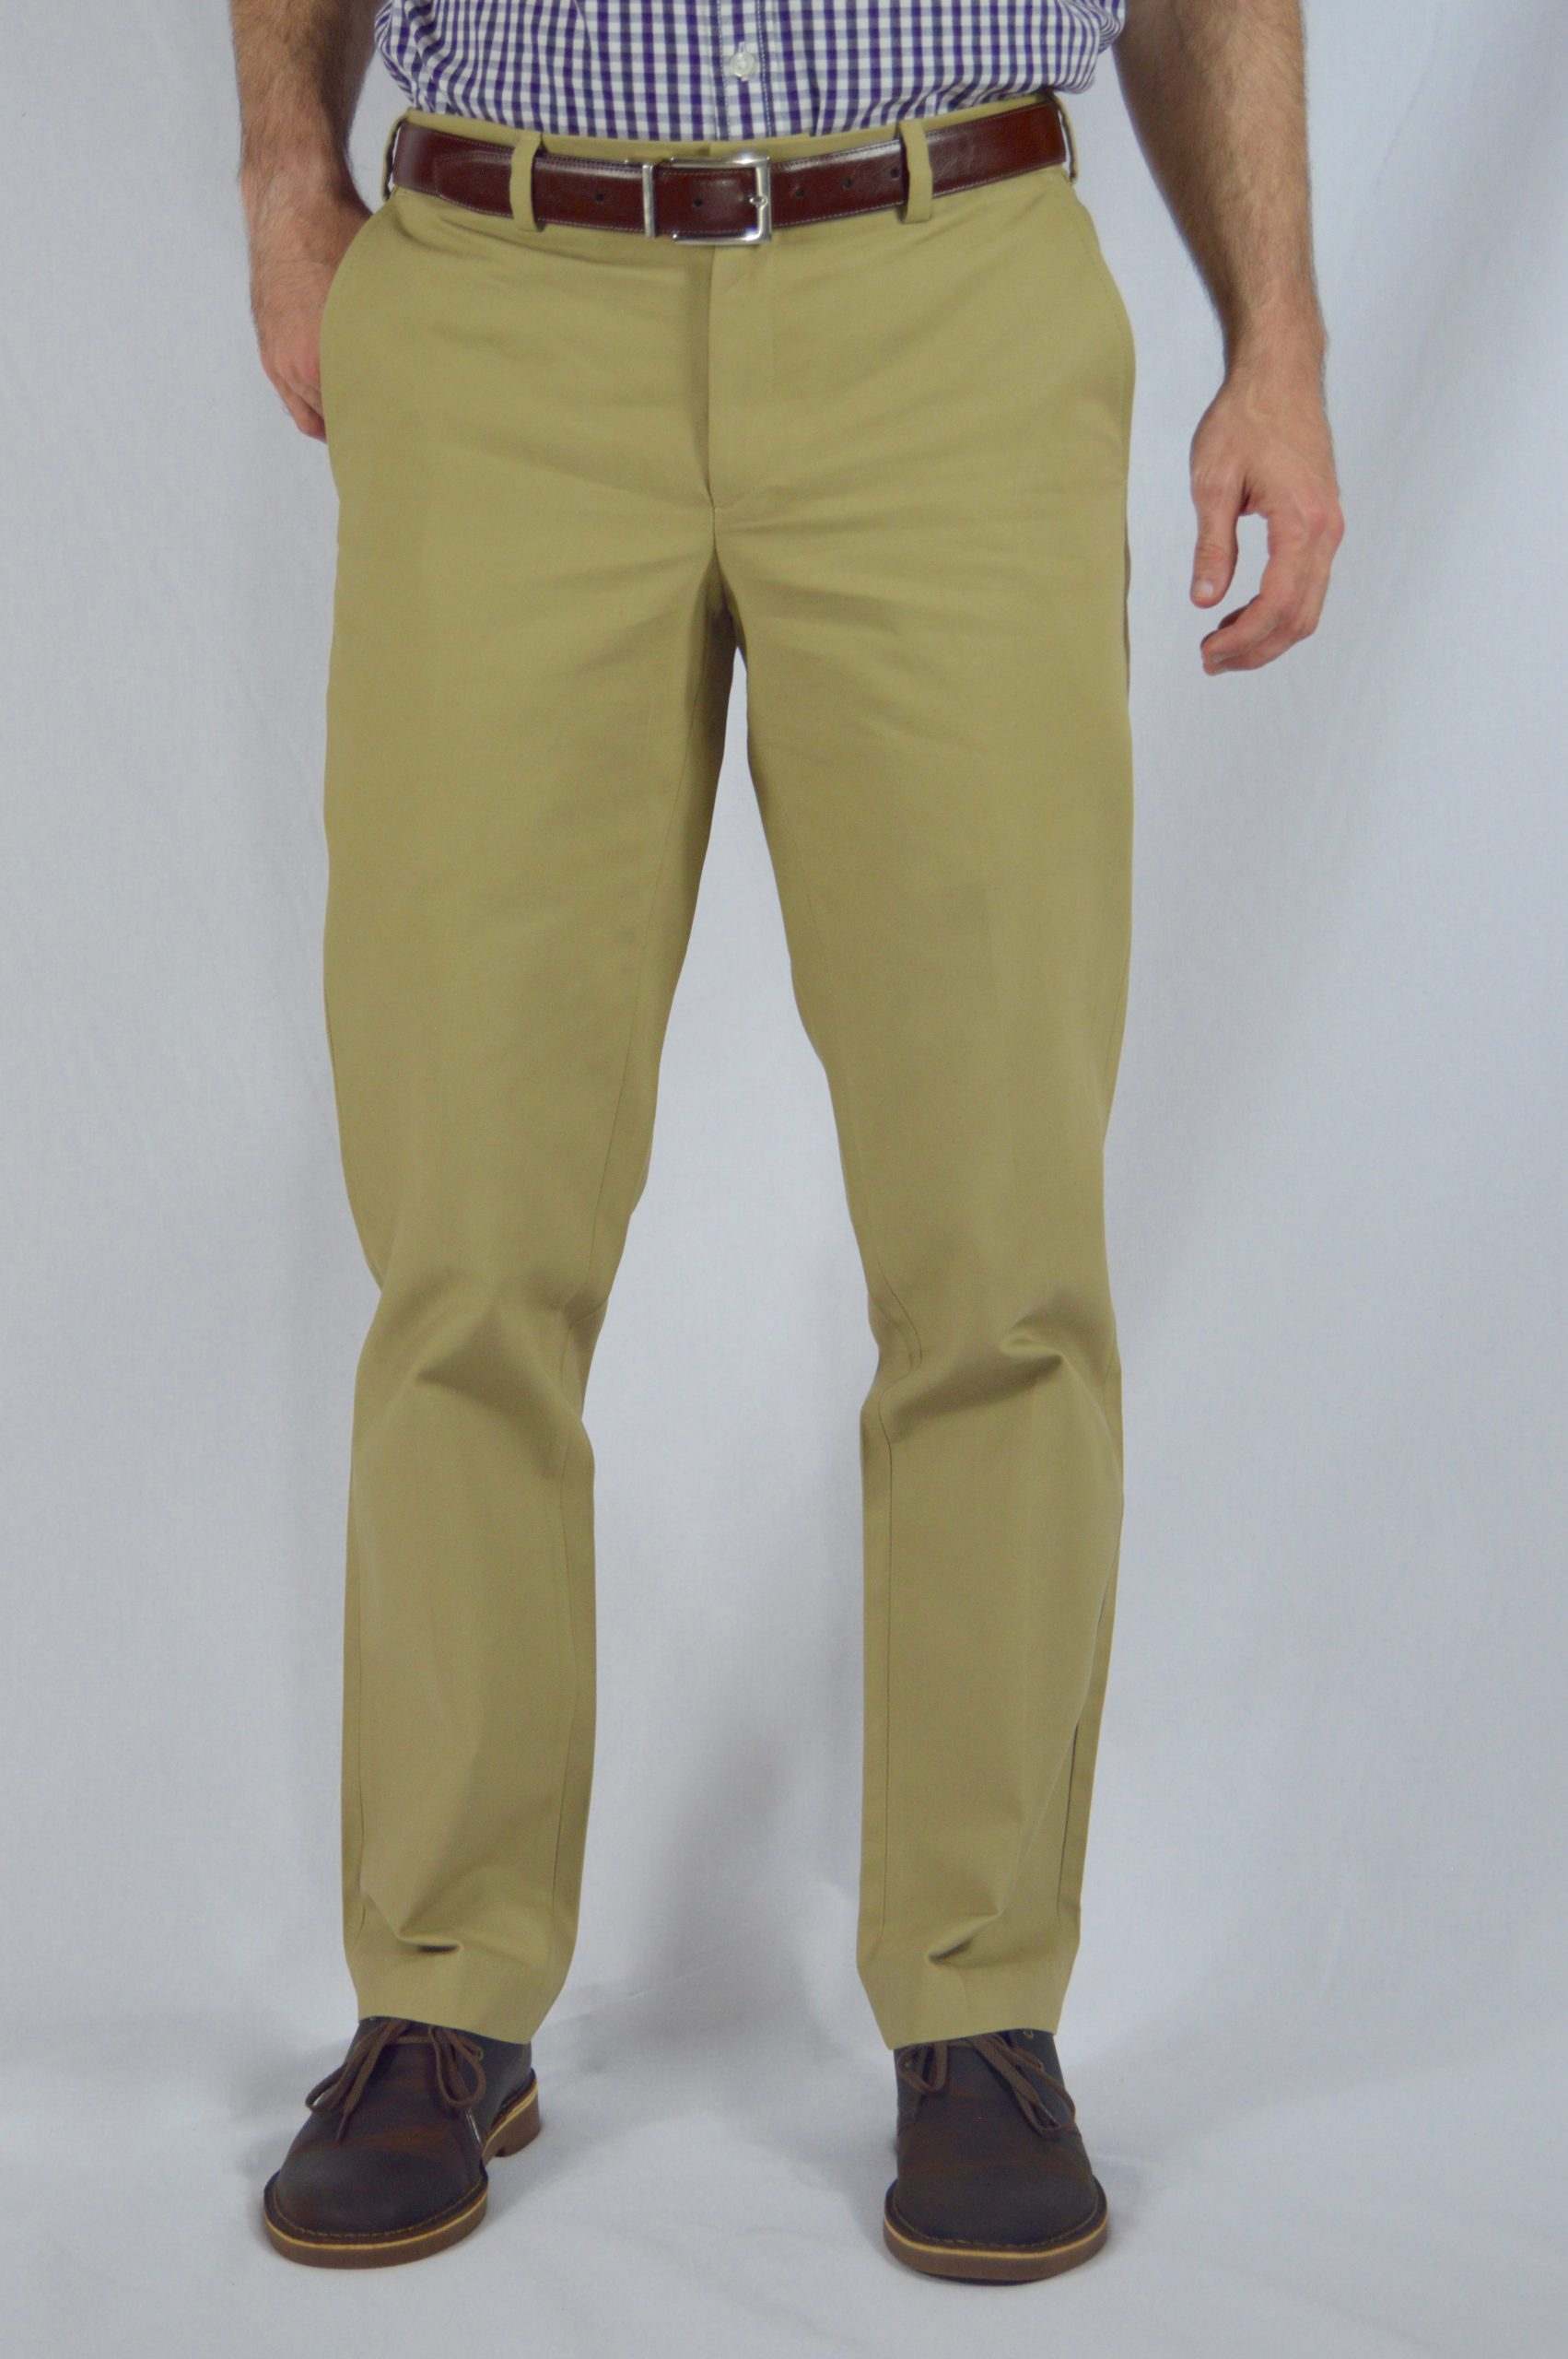 14 Dahlonega Canvas Pants